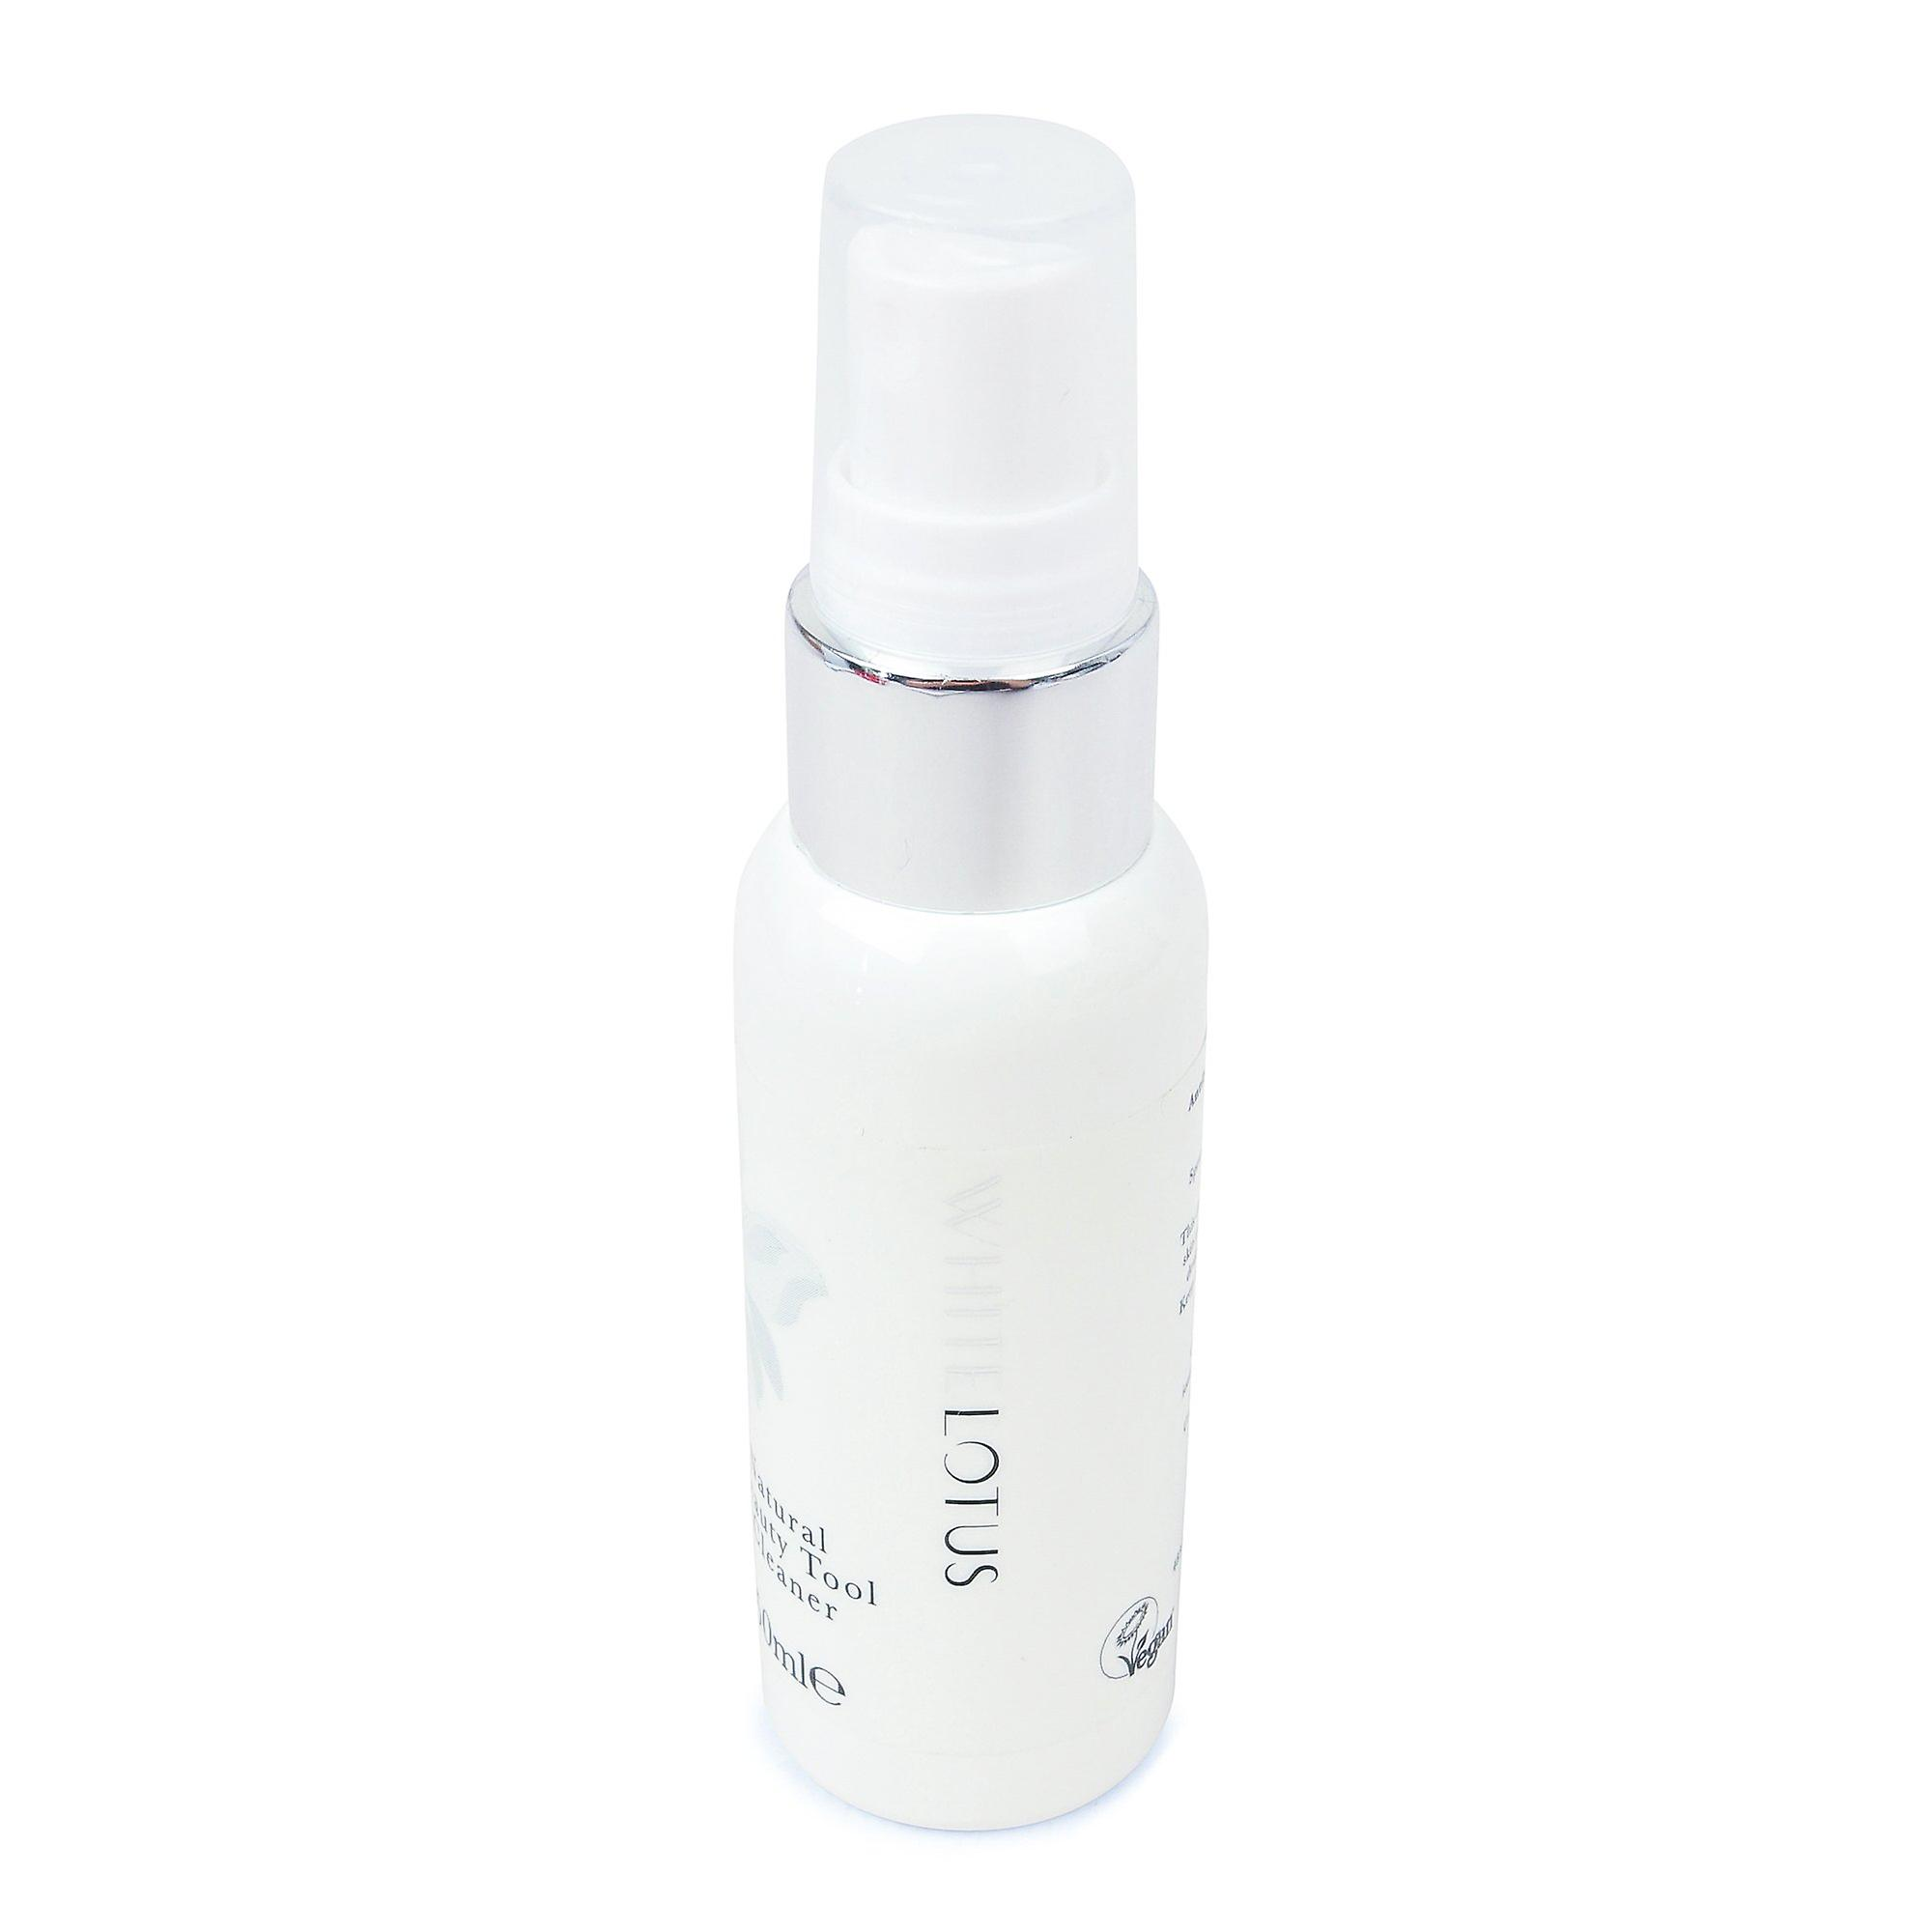 Natural beauty tool cleaner - anti bacterial colloidal silver spray 50ml